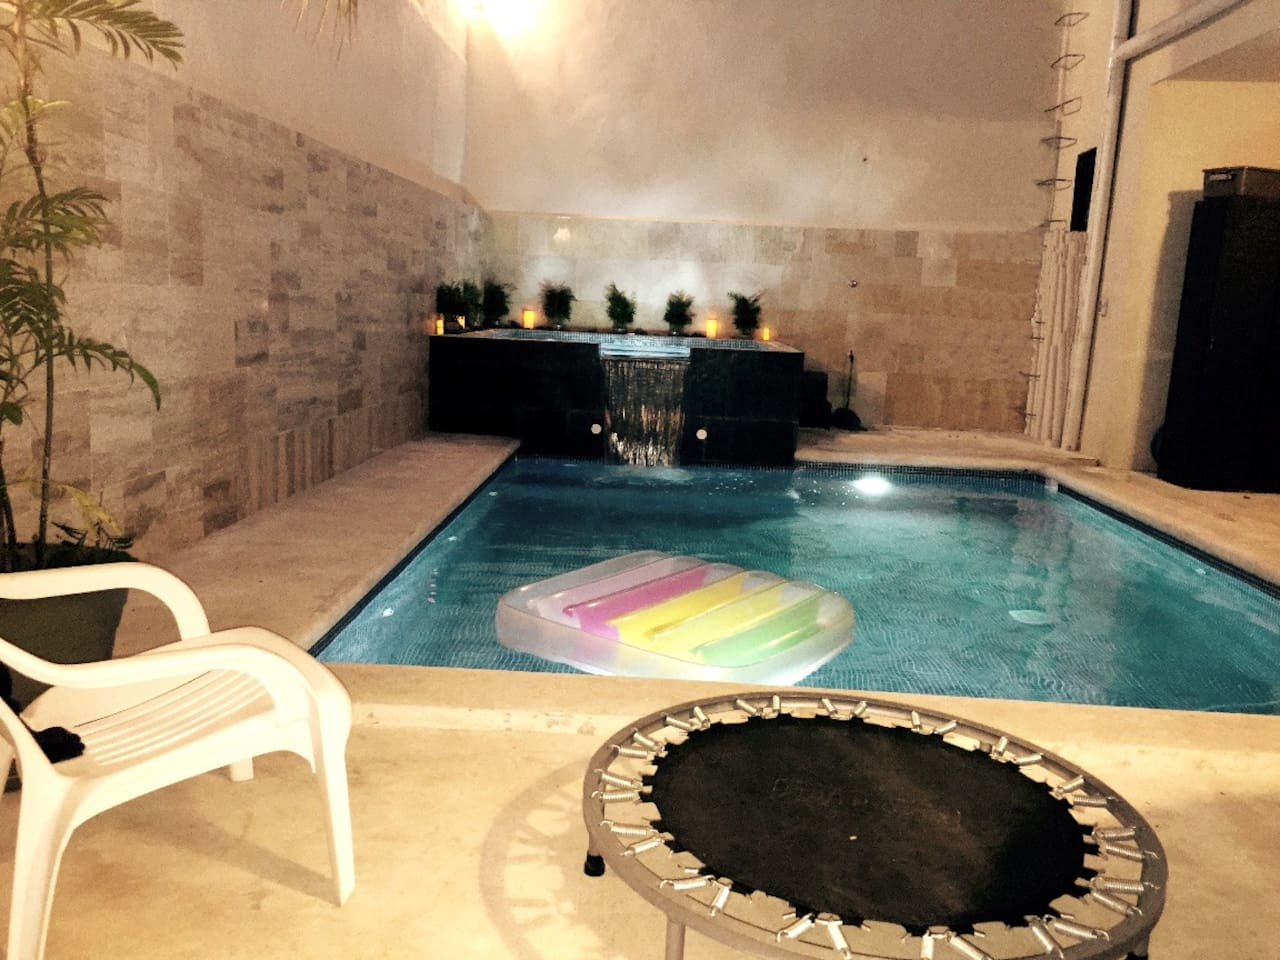 PISCINA Y JACUZZI DE USO EXCLUSIVO.